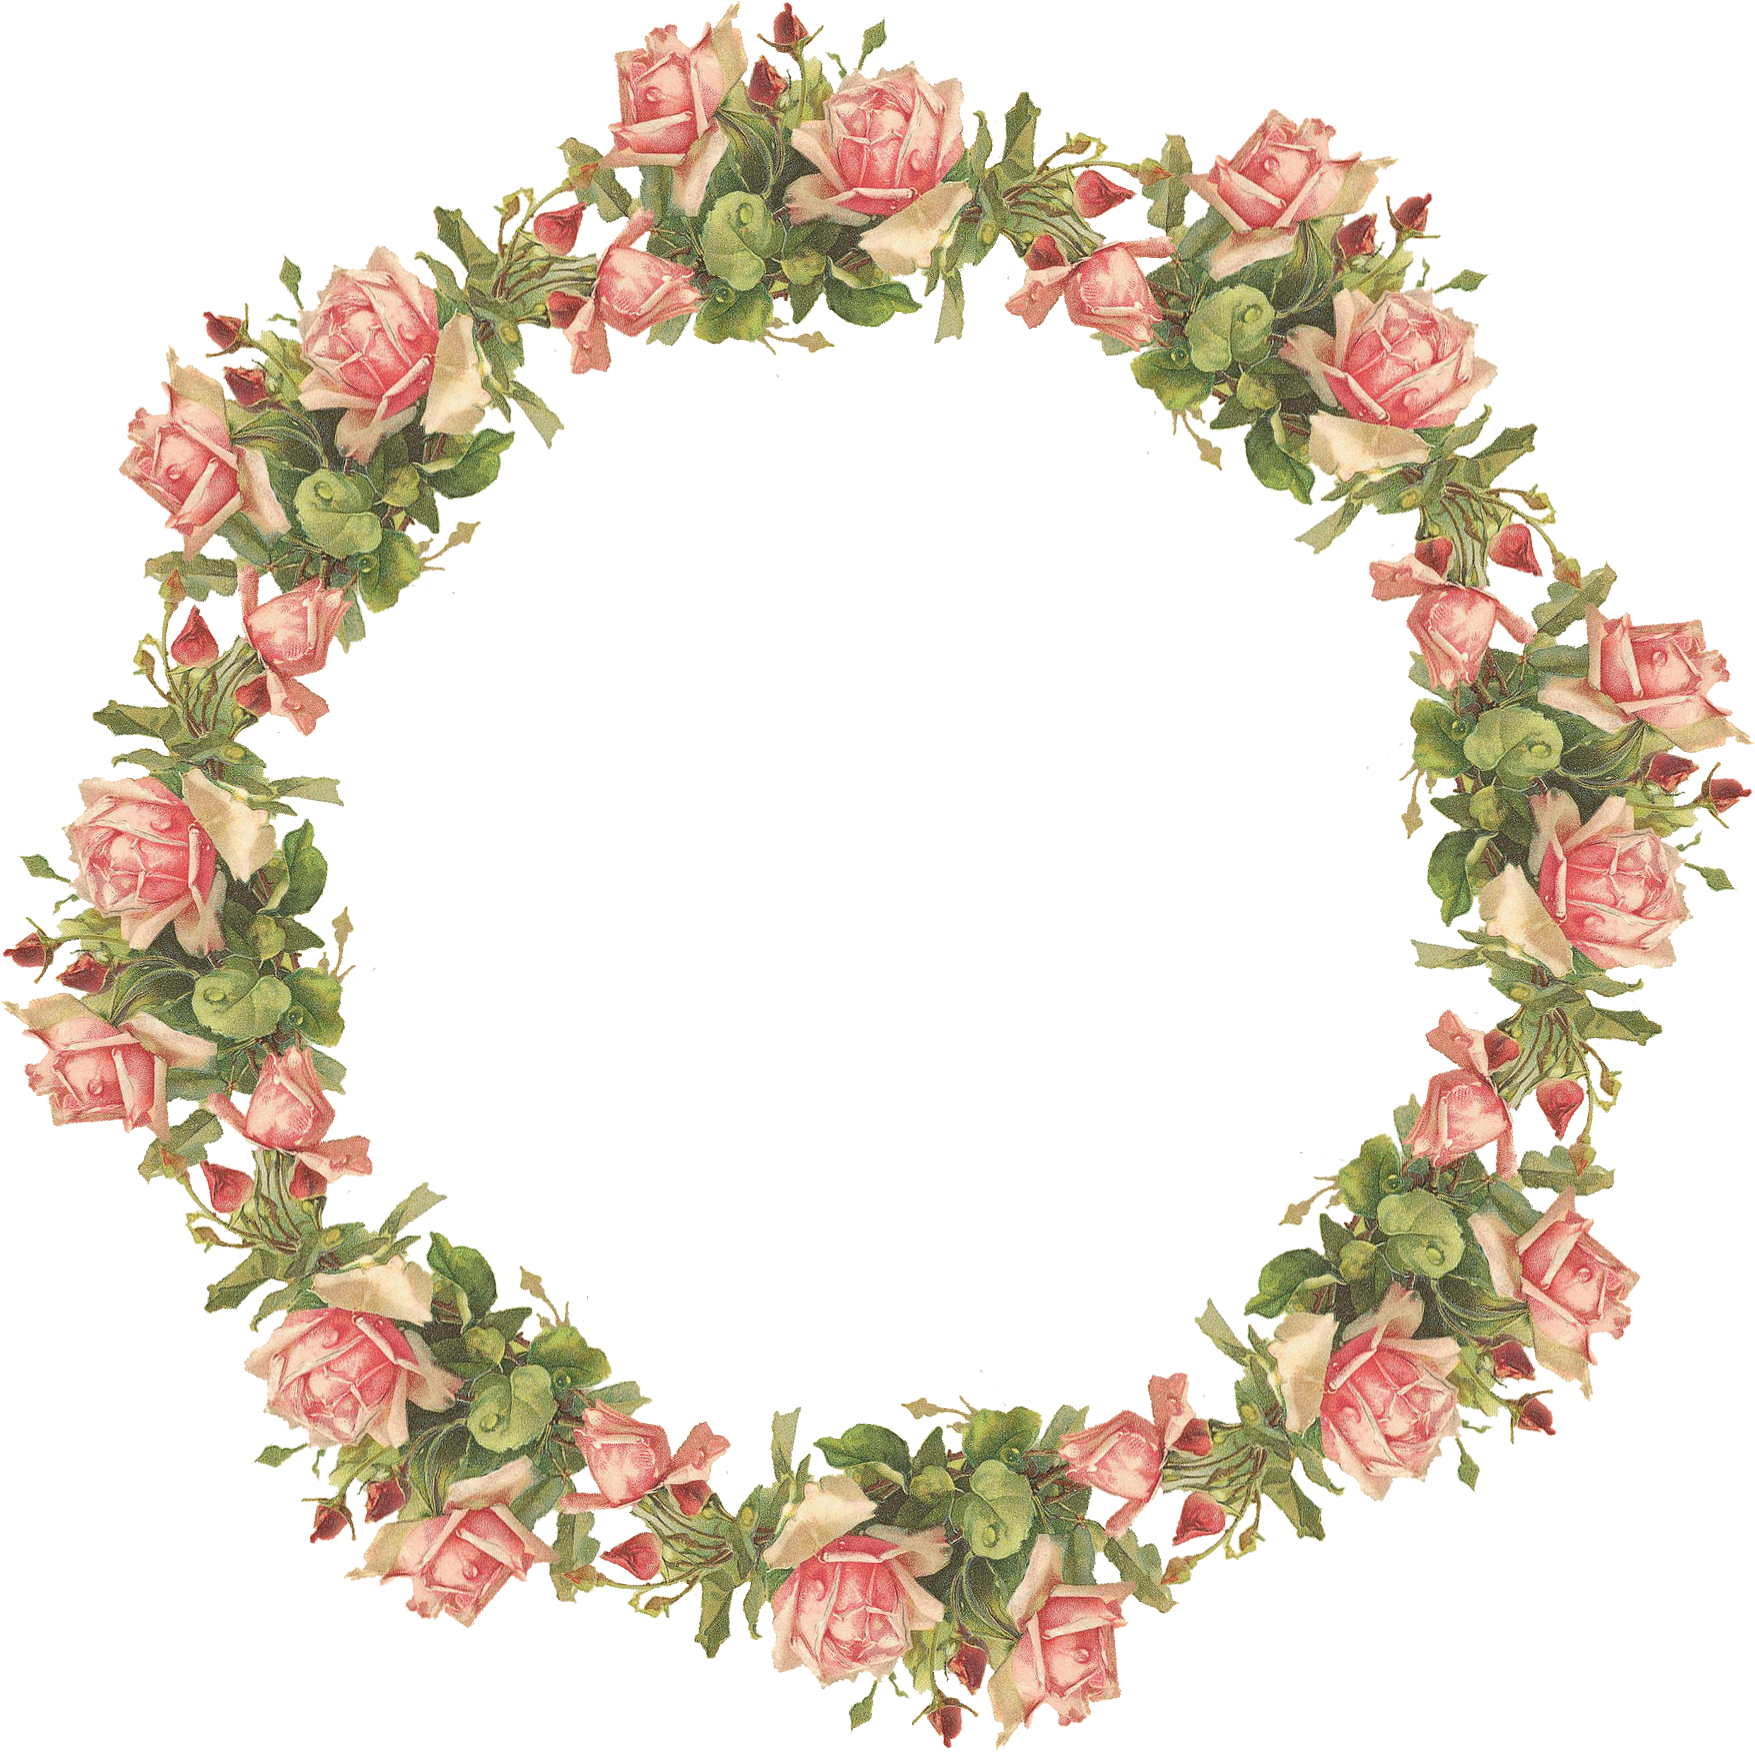 Catherine Klein Pink Roses Digital Elements Vintage Flowers Flower Frame Wreath Clip Art